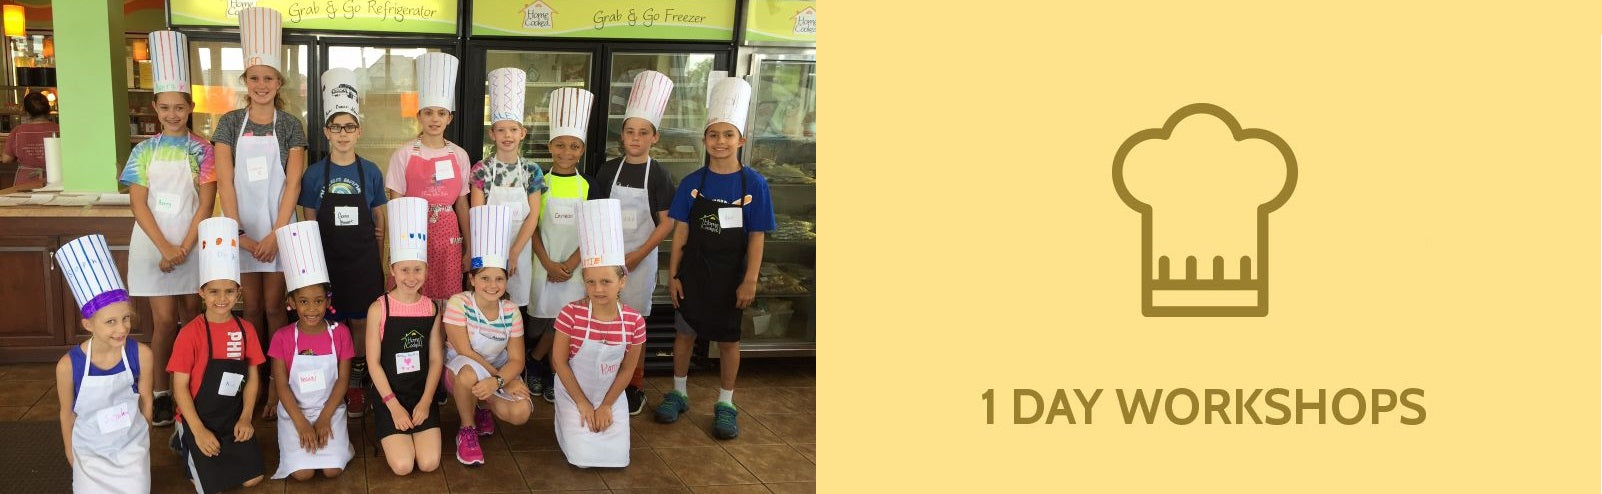 Kids Baking WorkShop